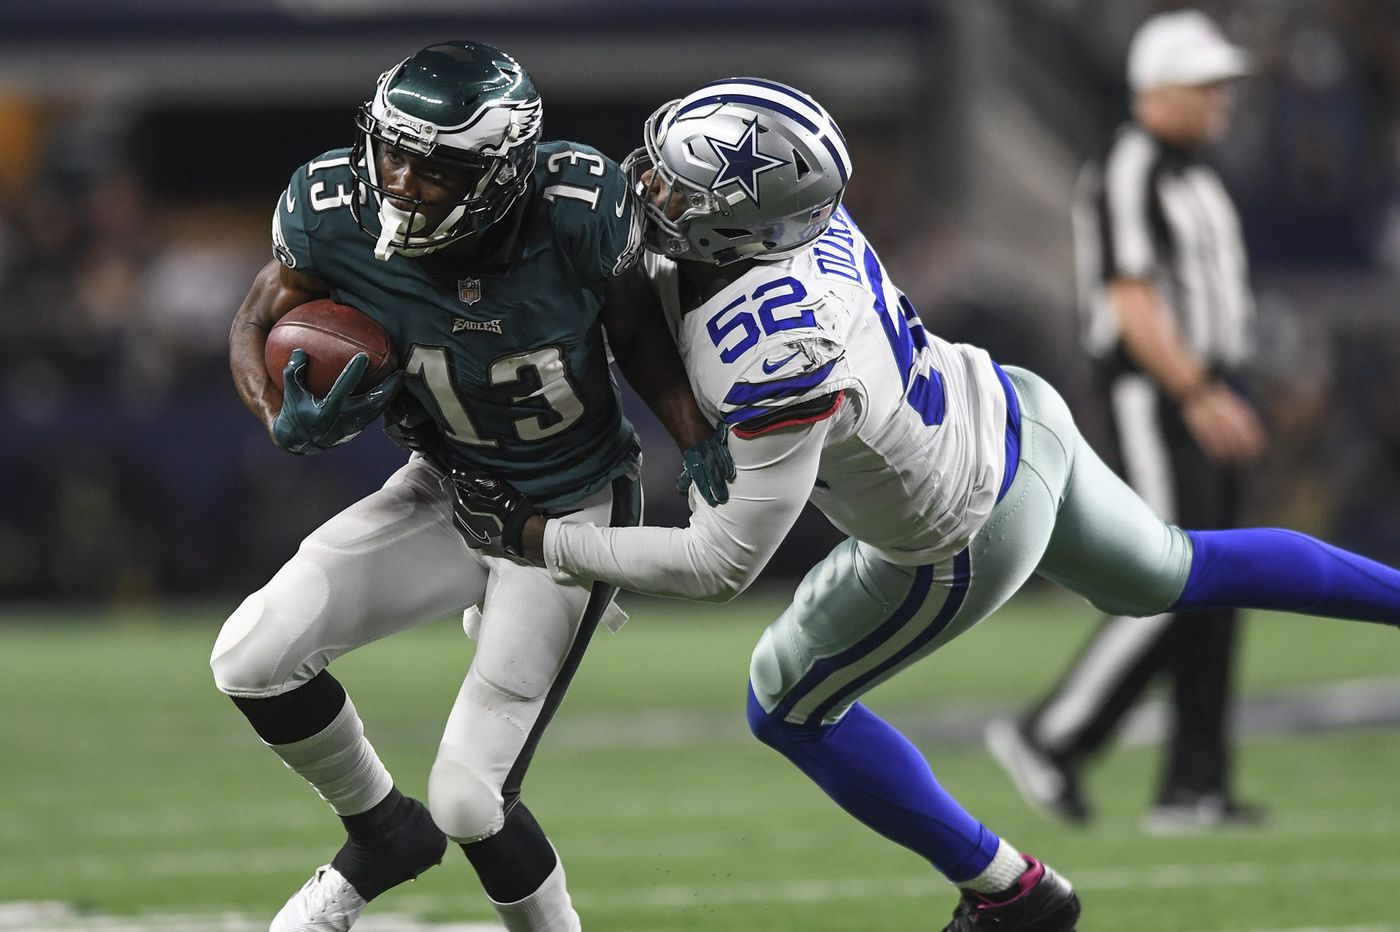 2018 Eagles season: Our writers make their game-by-game